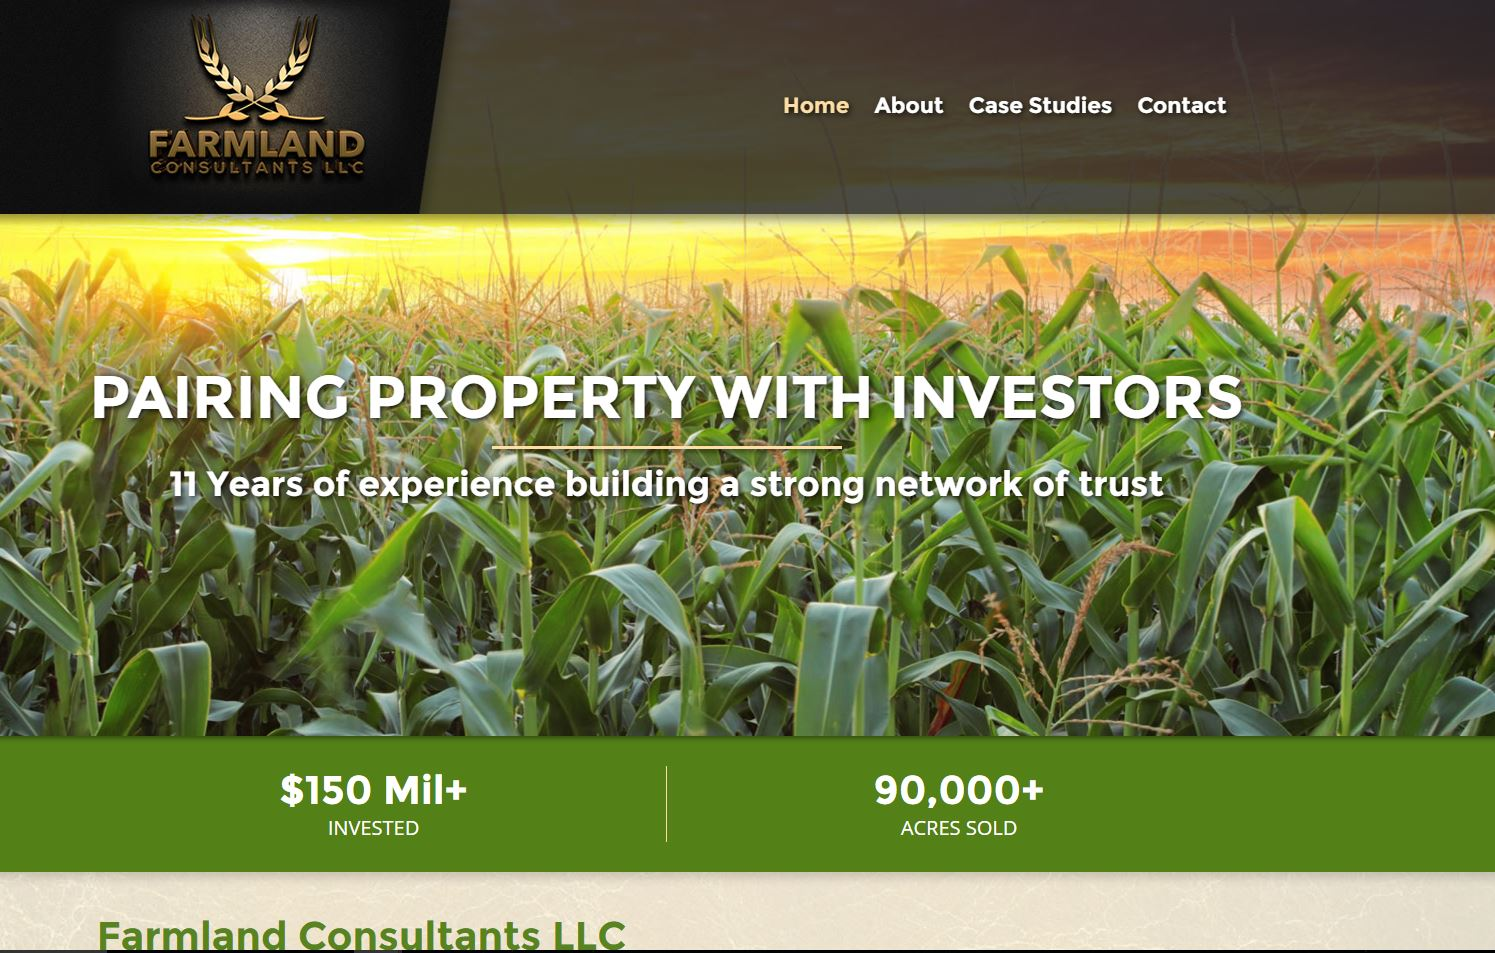 Farmland Consultants LLC new website